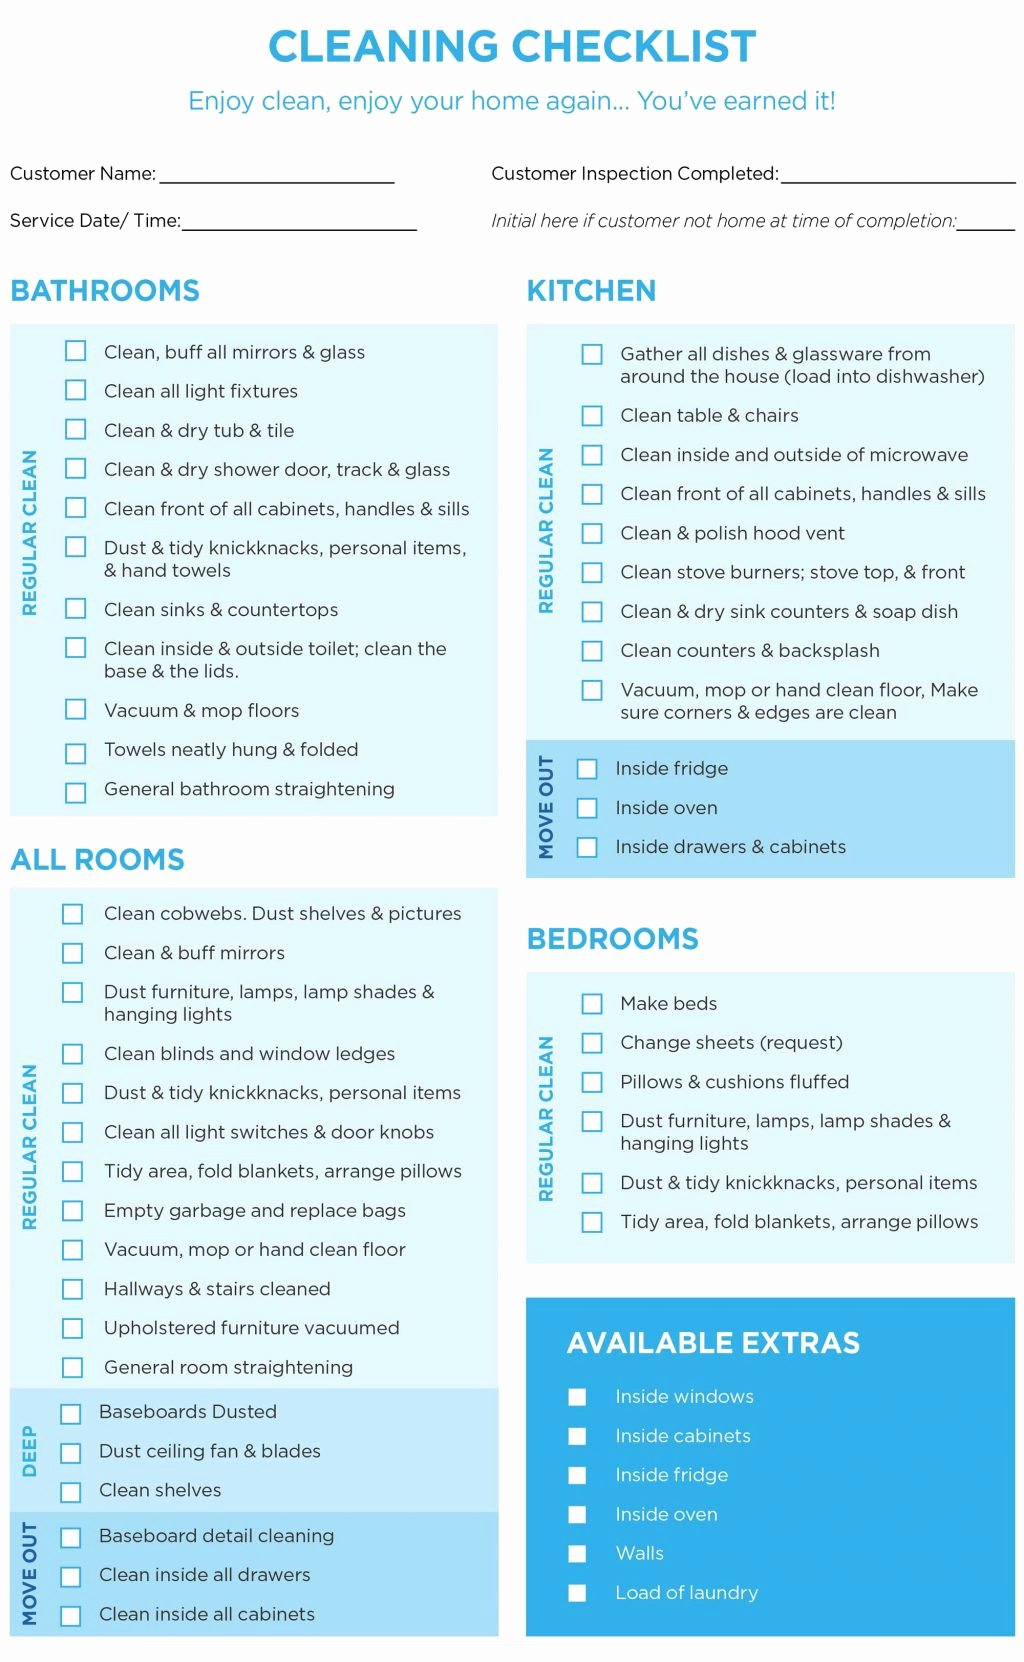 House Cleaning Checklist Template Elegant 40 Helpful House Cleaning Checklists for You